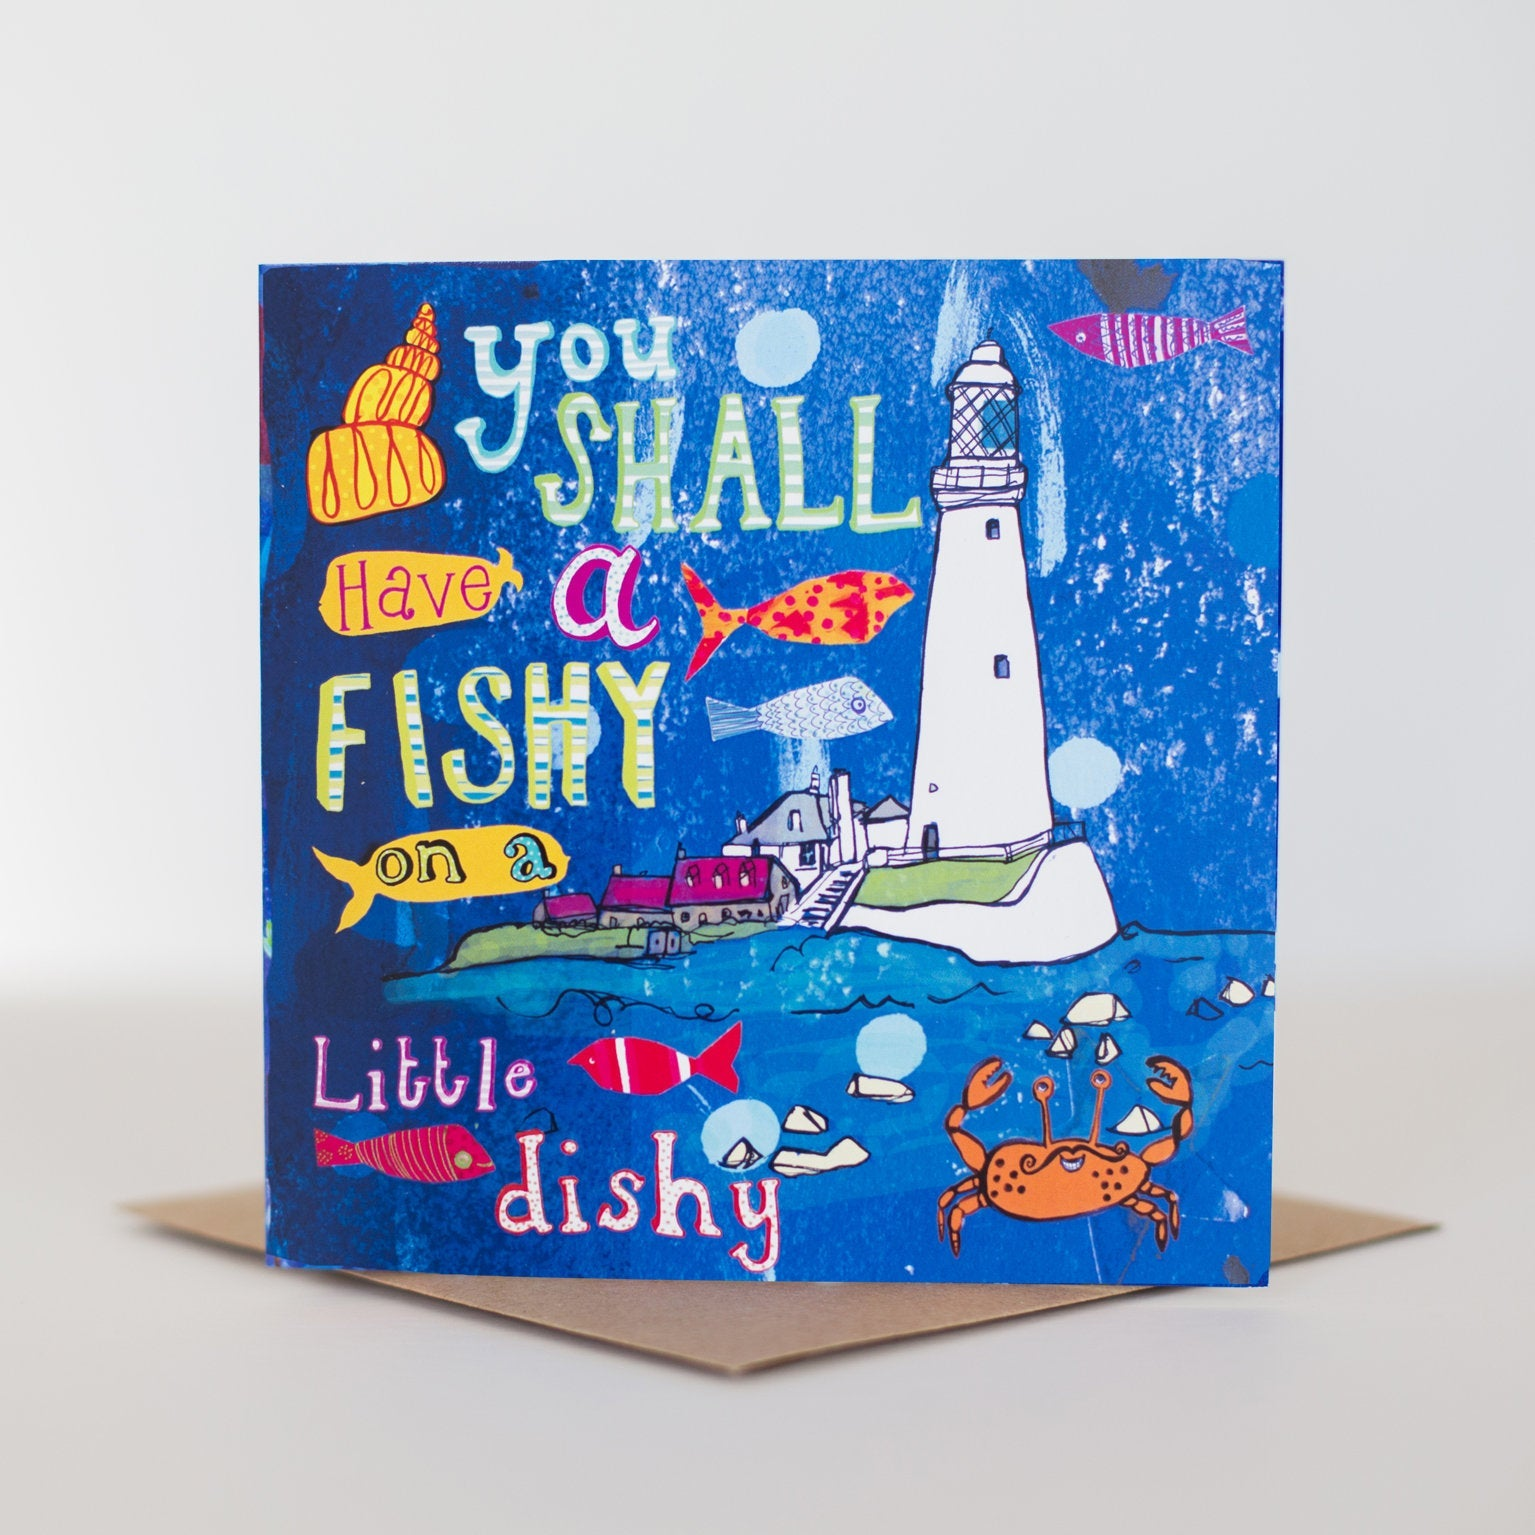 'You Shall Have a Fishy...' Greetings Card